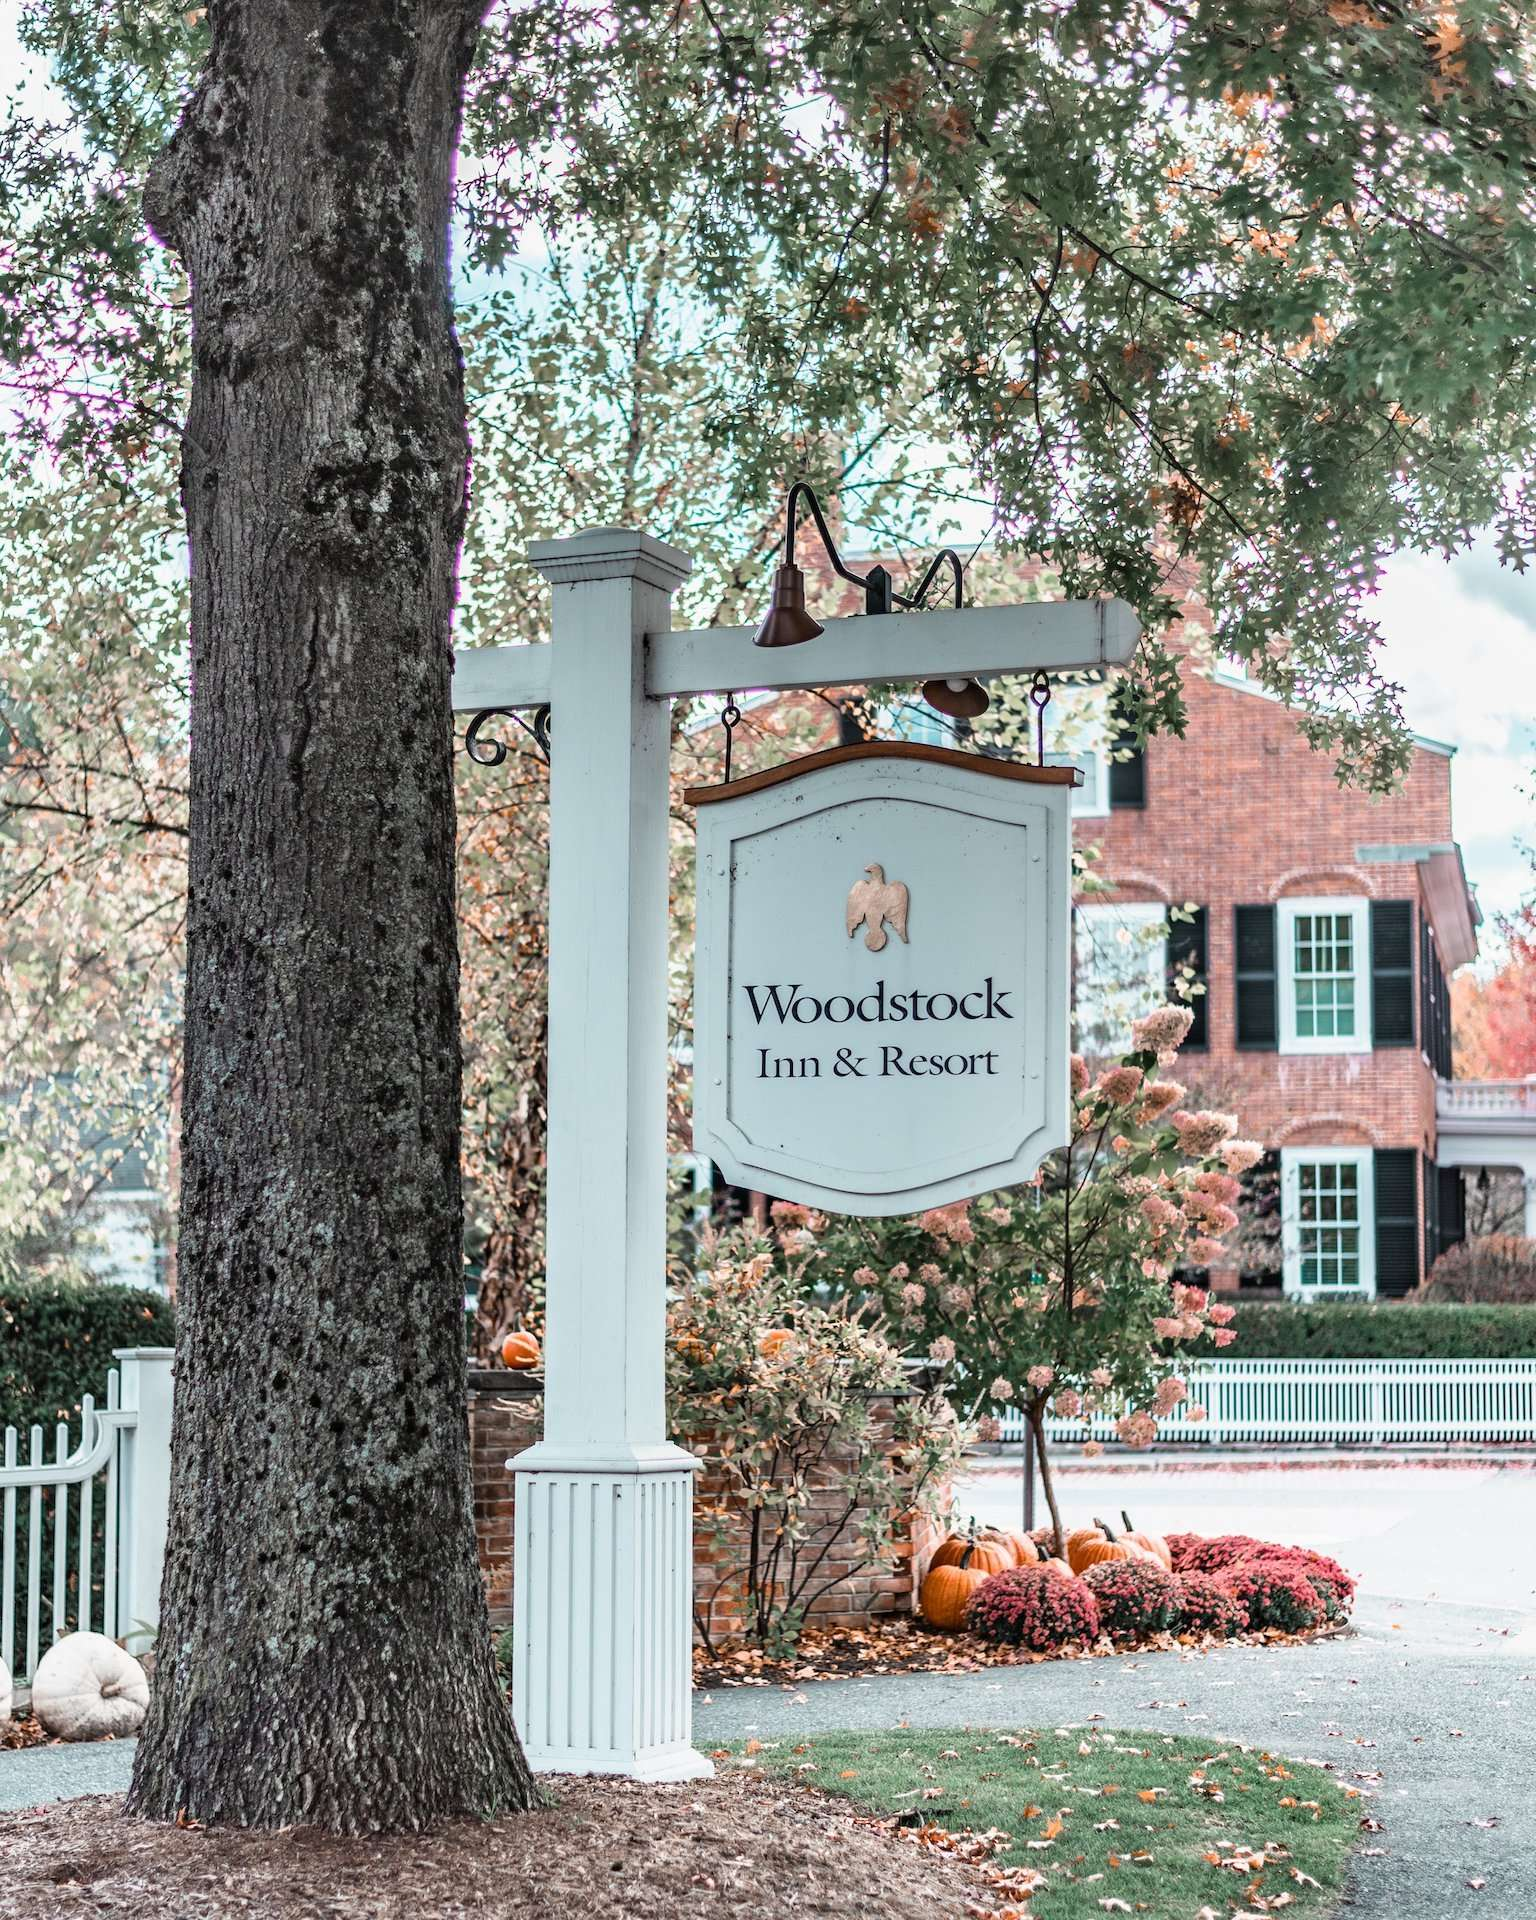 Woodstock Inn & Resort sign